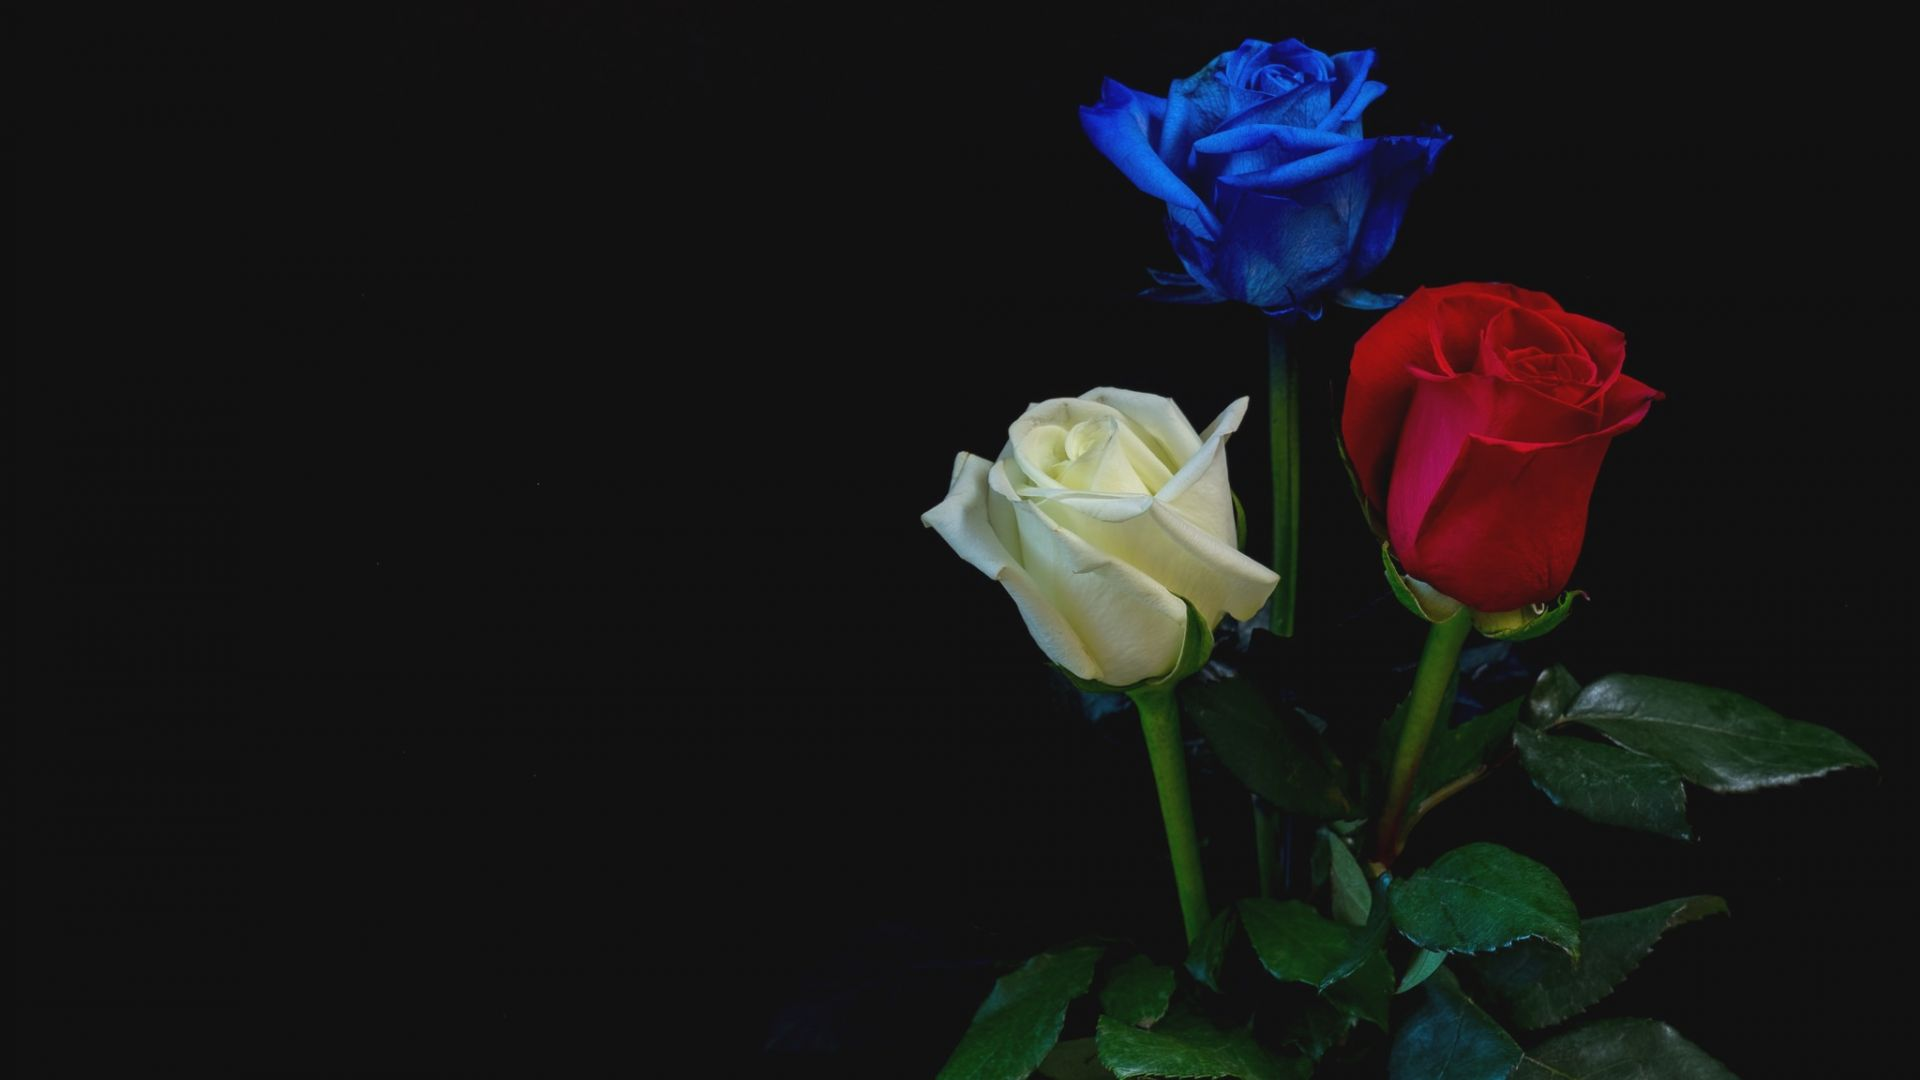 Desktop Wallpaper Blue Red White Roses Flowers Hd Image Picture